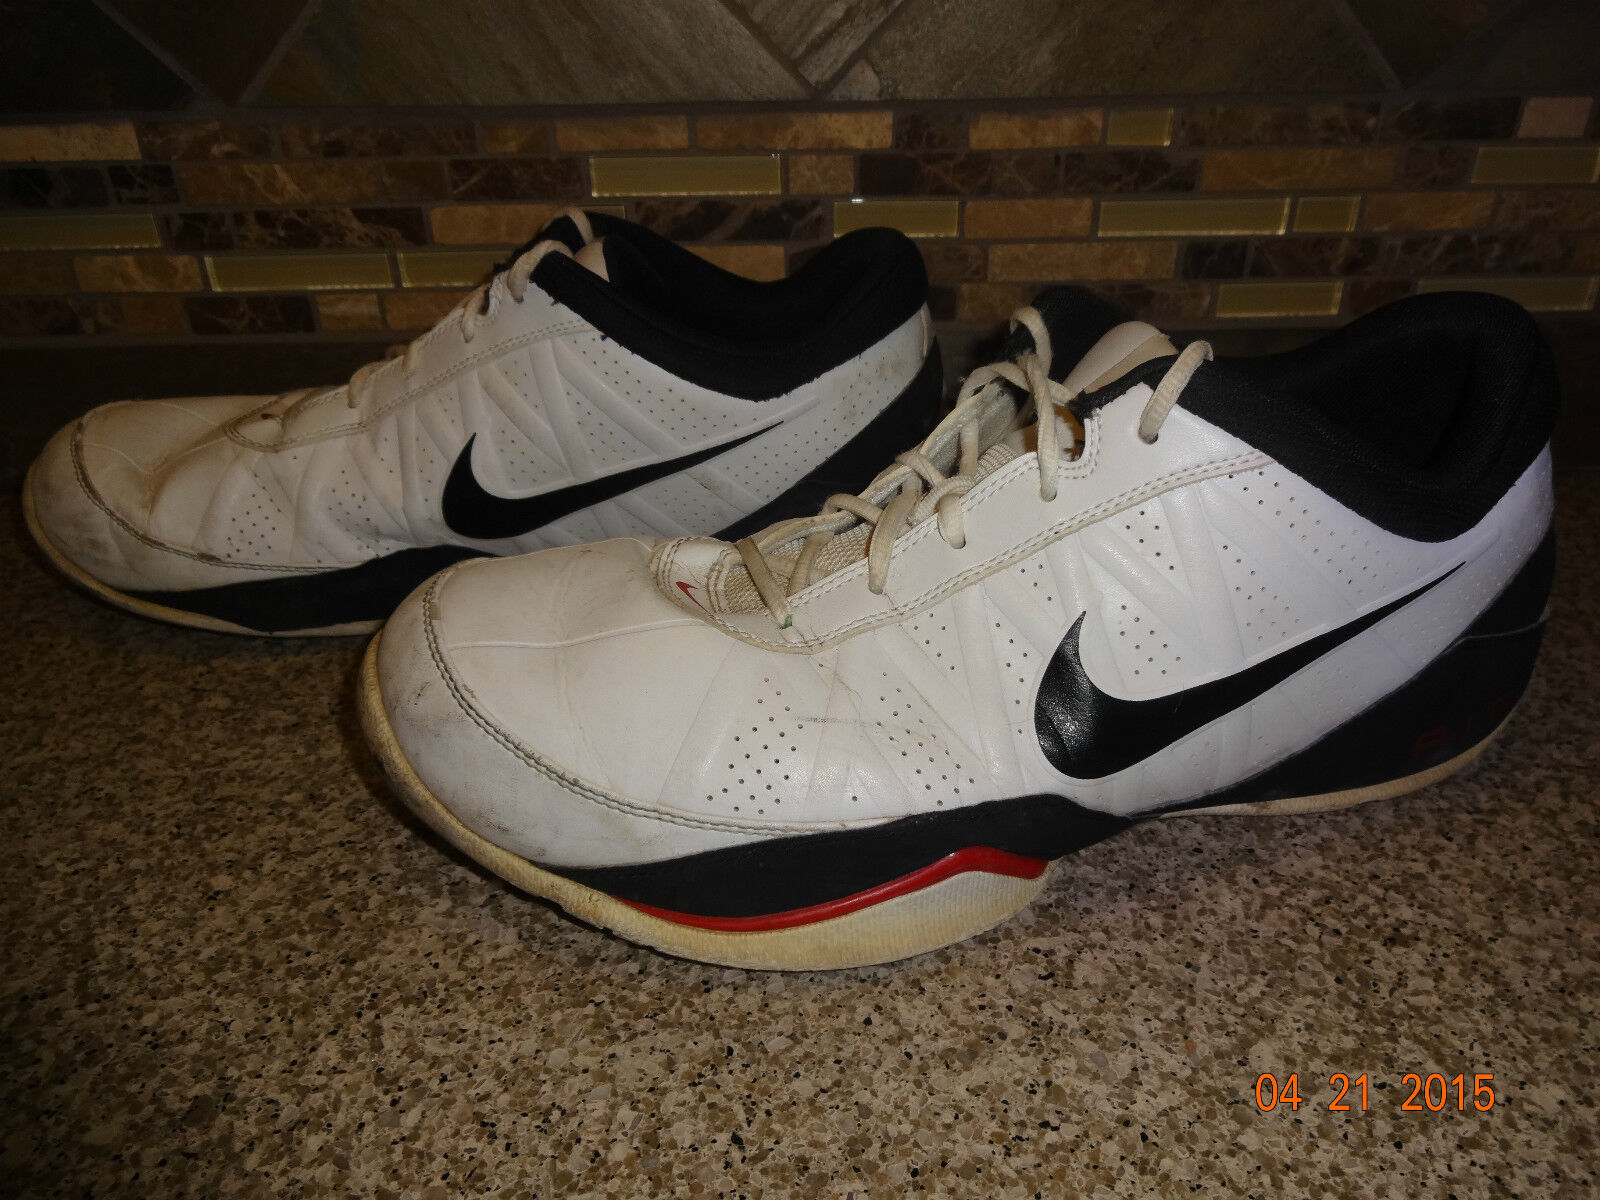 e8d24100a807e ... Mens NIKE Air Ring Ring Ring Leader Low Sz 13 White Black Athletic  Shoes bd0e88 ...